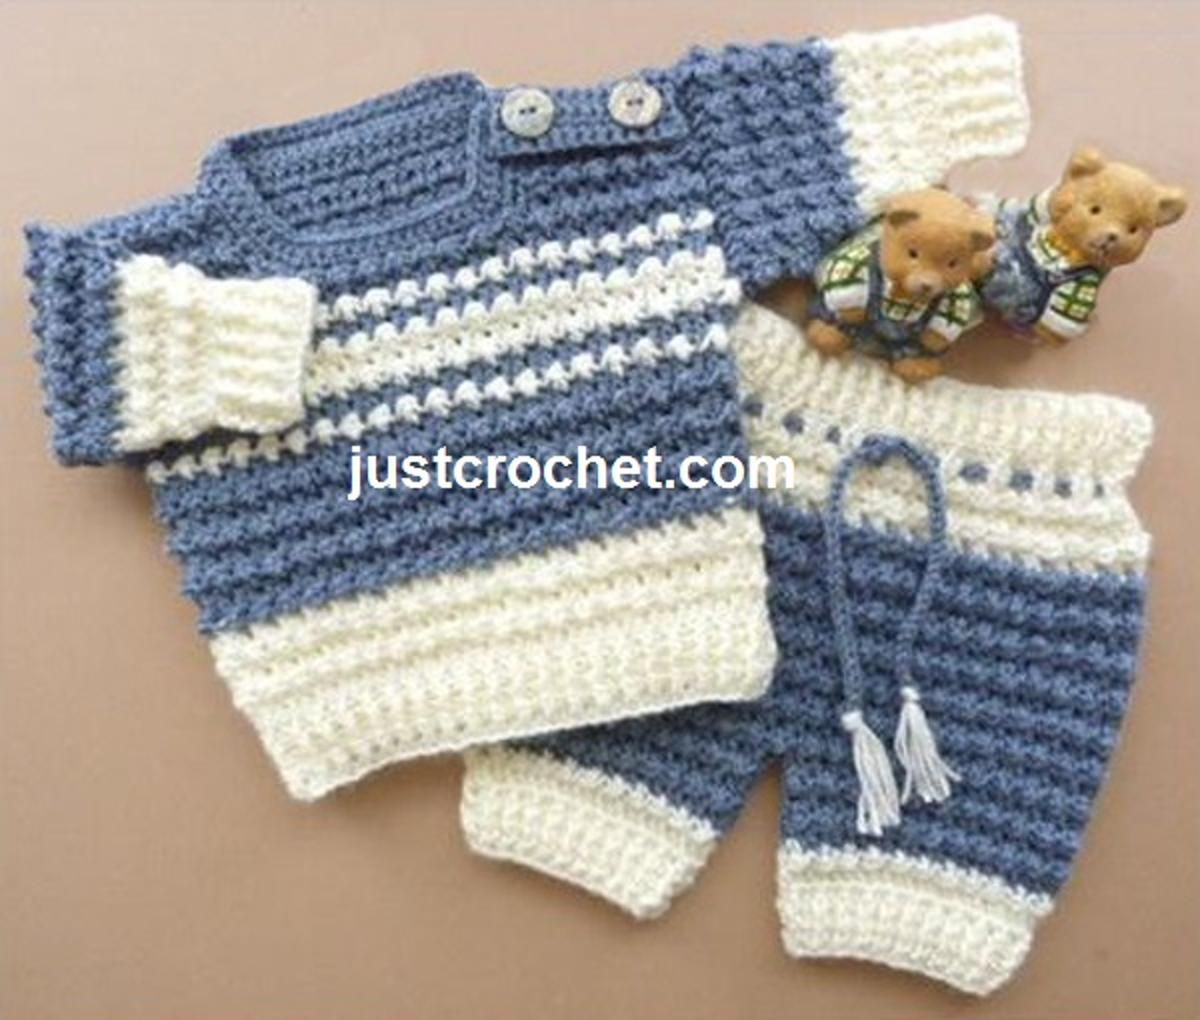 fjc13-Boys Sweater and Pants Baby Crochet Pattern   Amarillo y Bebé